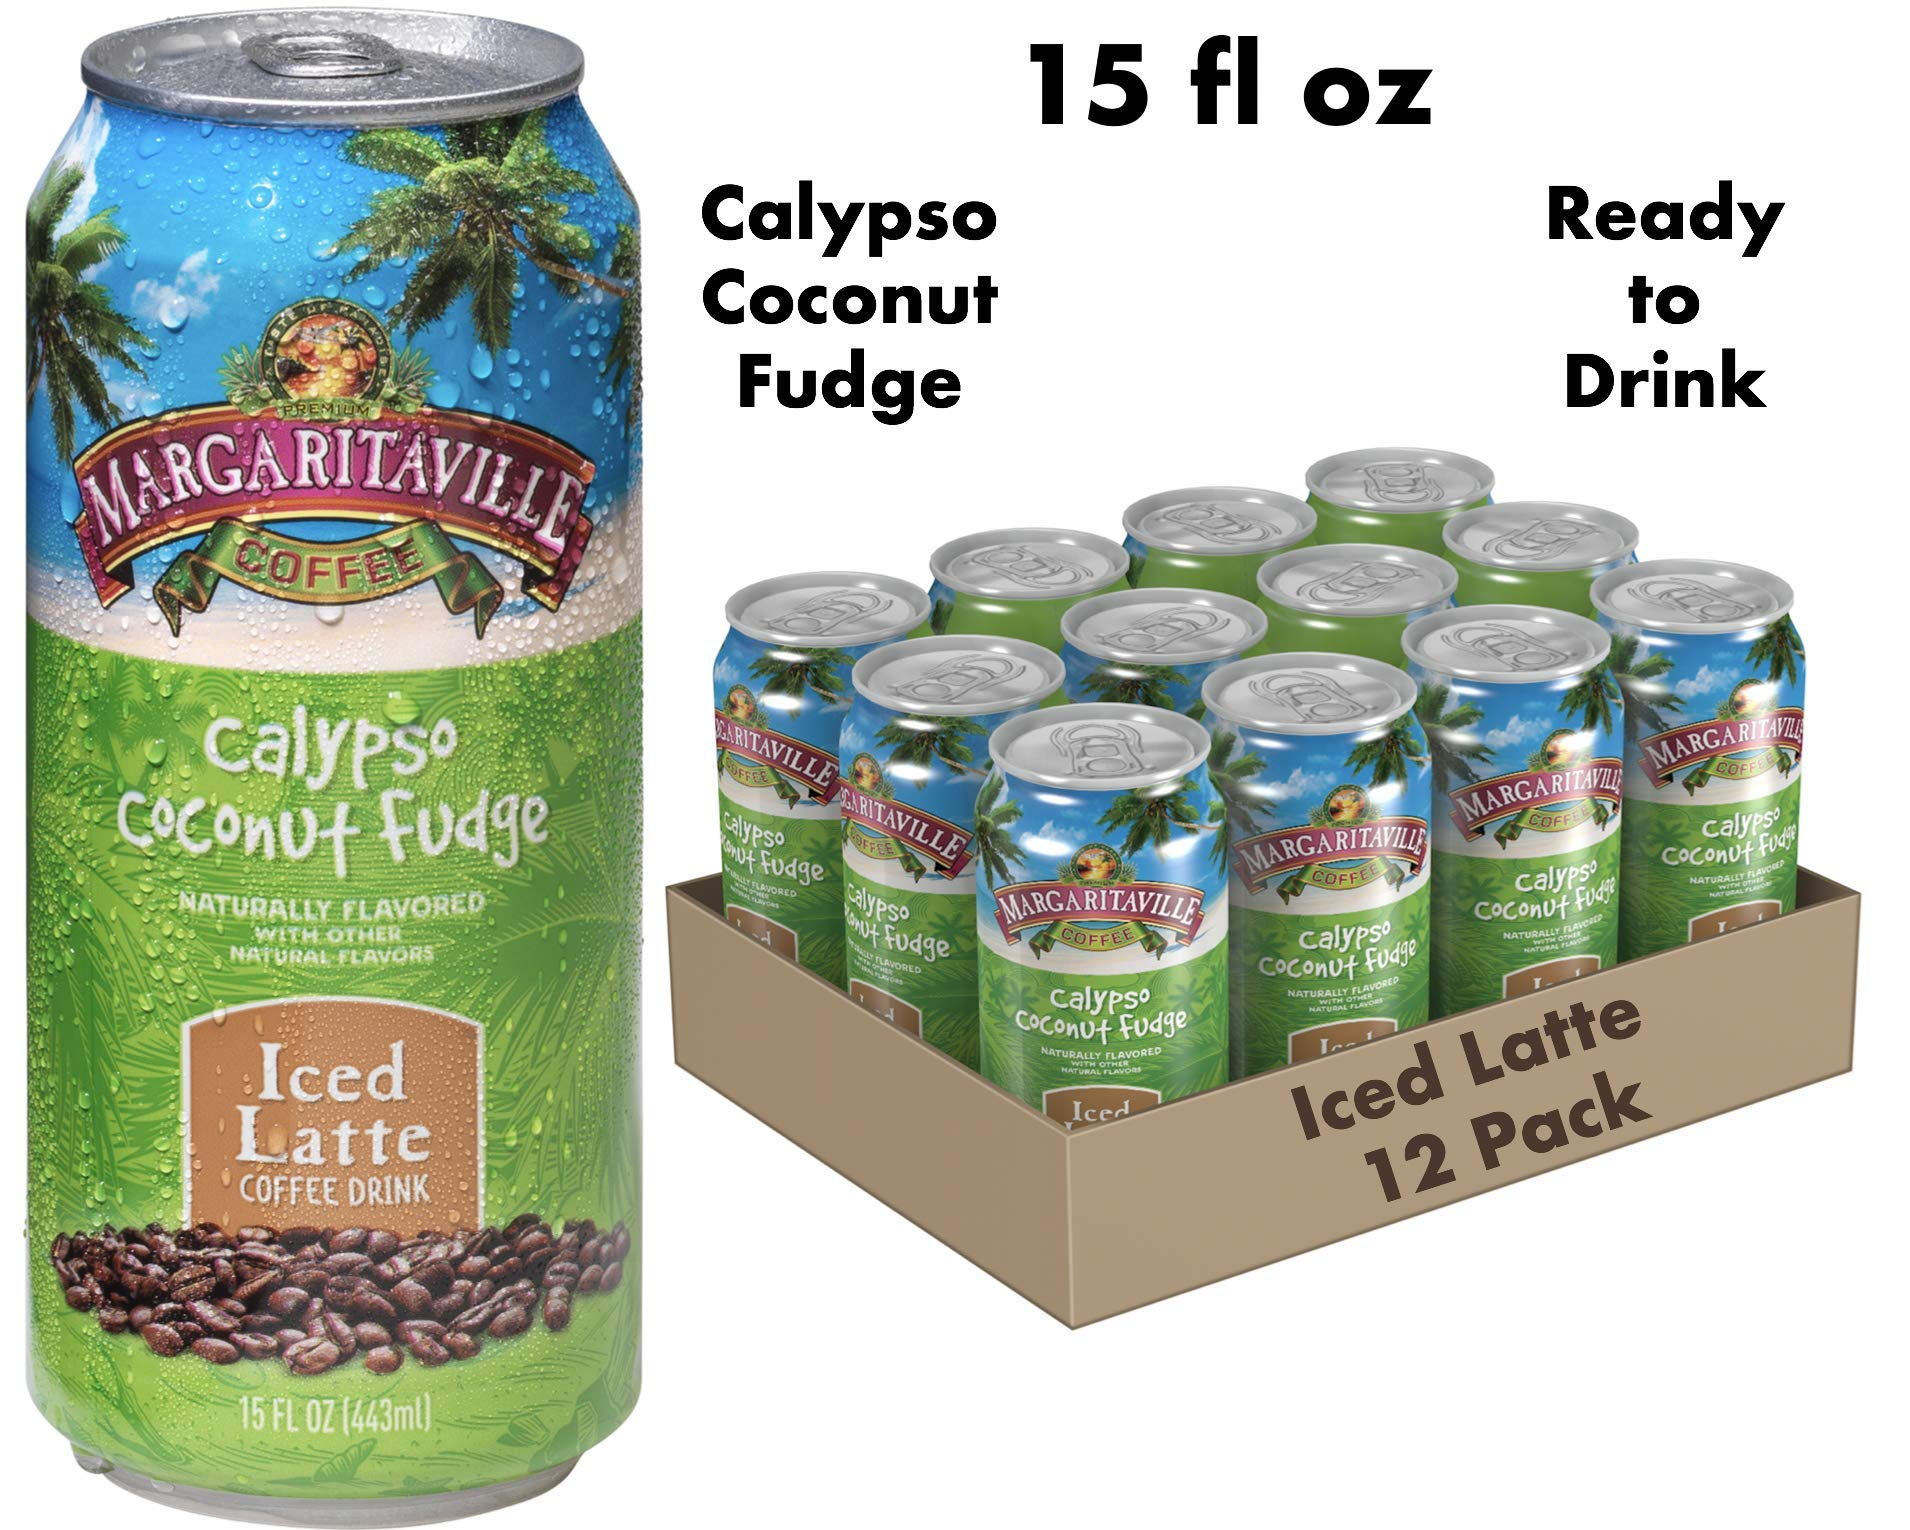 Margaritaville Coffee Pre-Made Calypso Coconut Fudge Latte, Ready to Drink, 15 oz (Pack of 12)